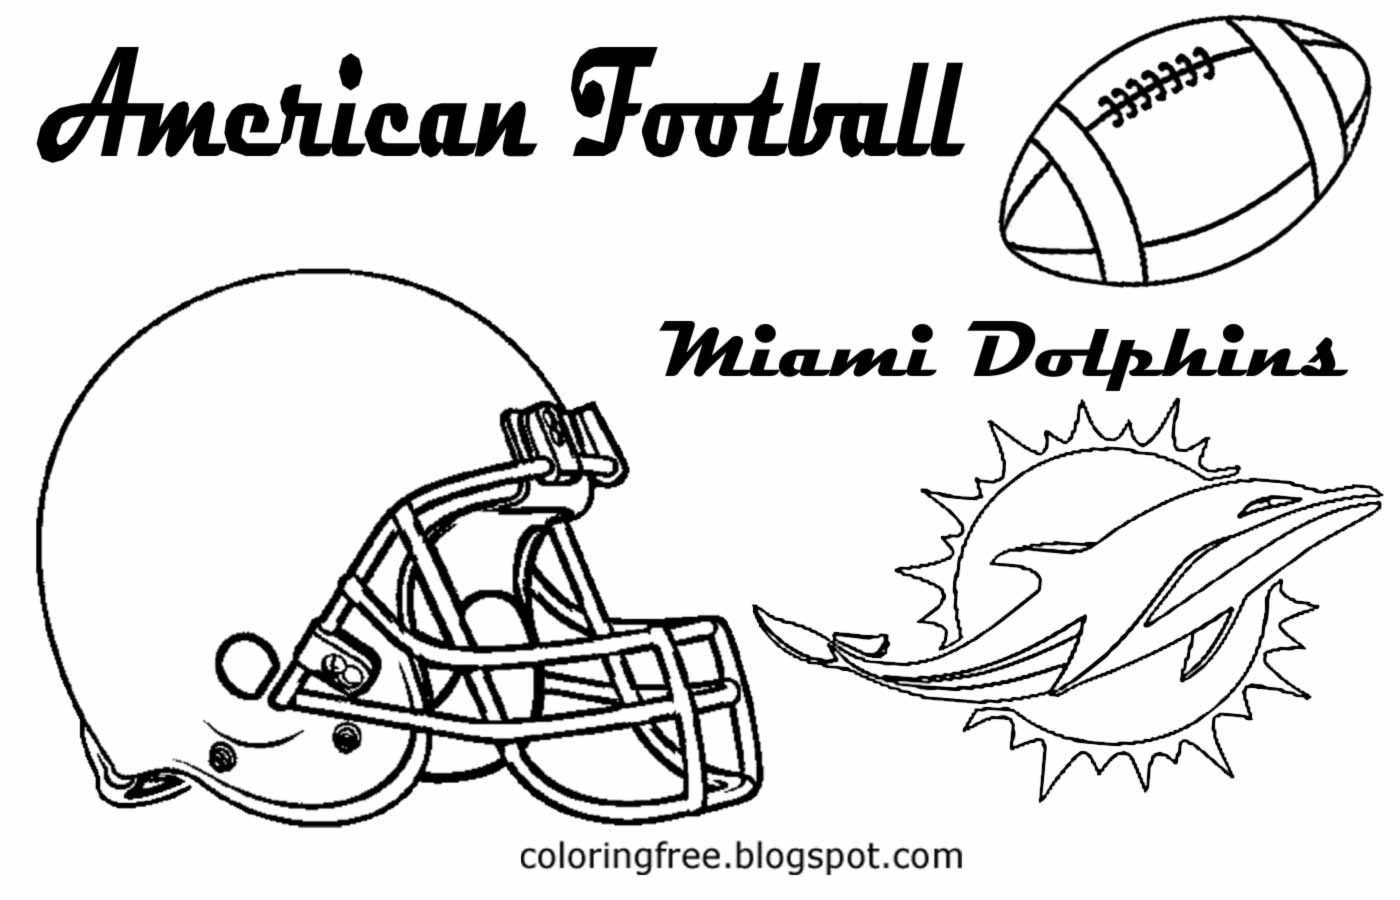 miami hurricanes coloring pages - photo#7